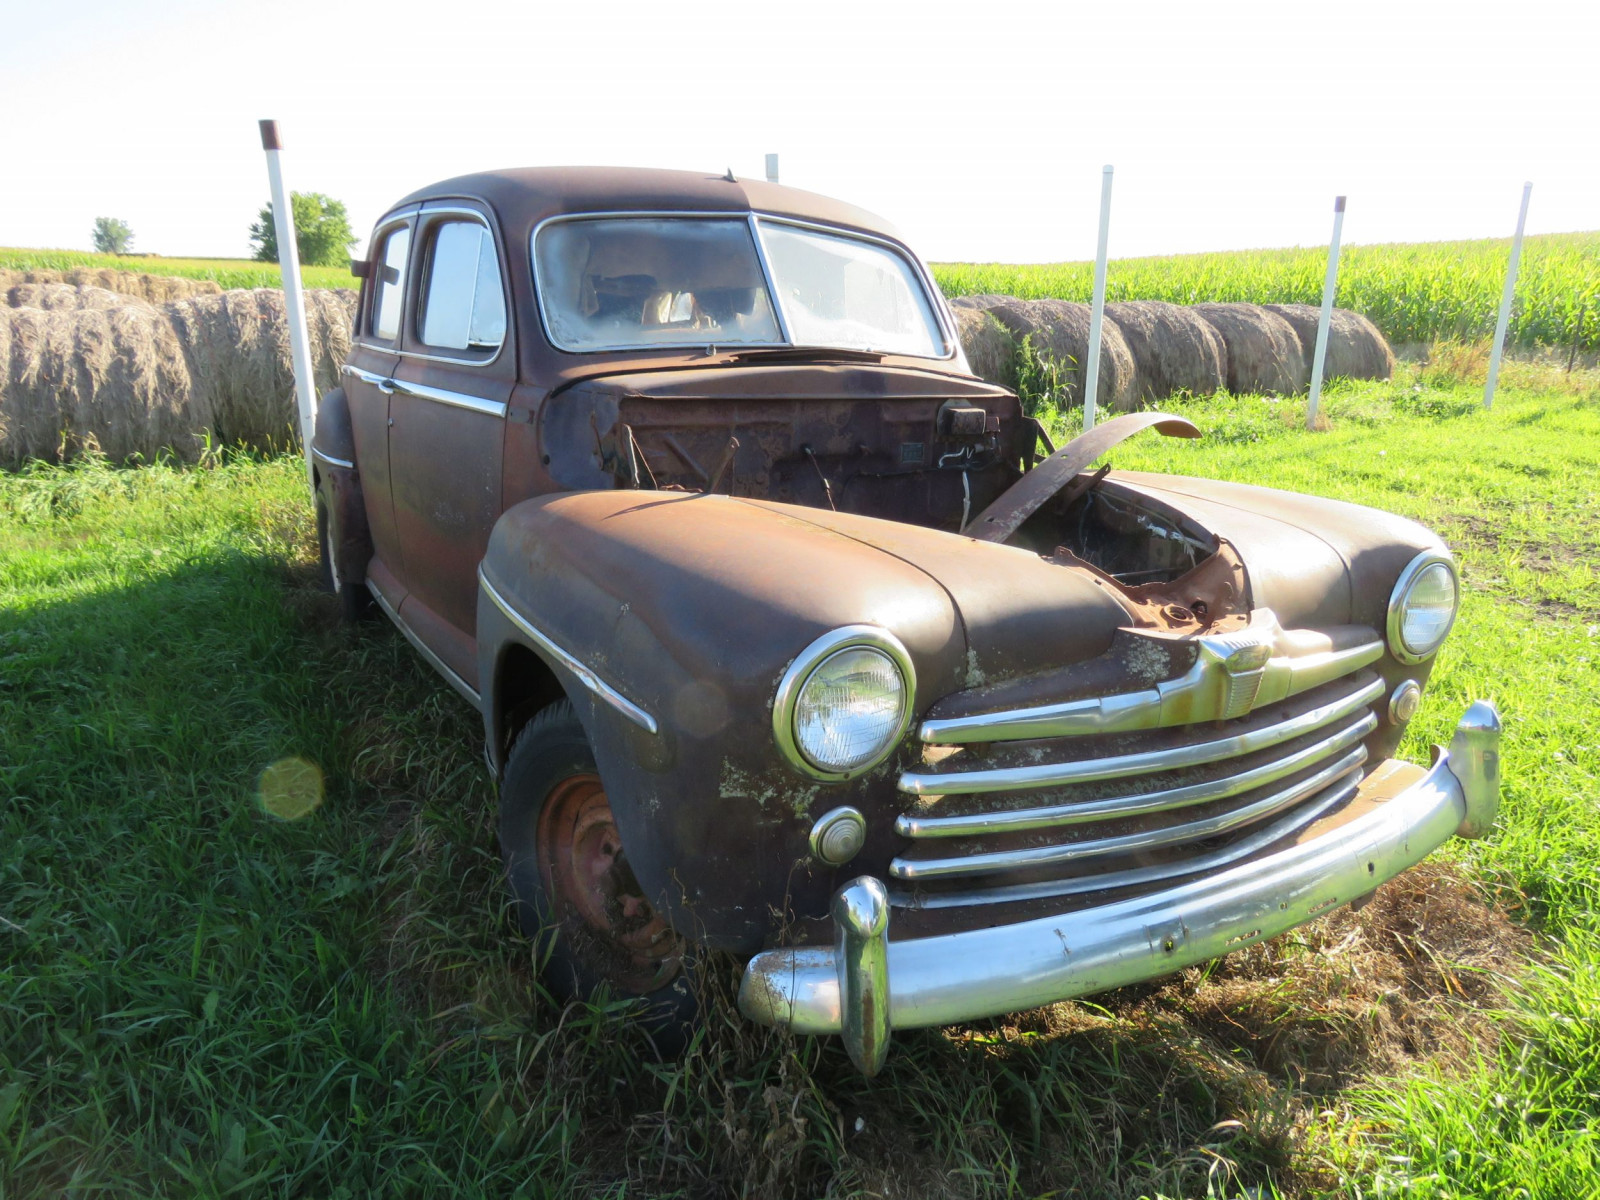 1947 Ford 4dr Sedan for Project or Parts - Image 2